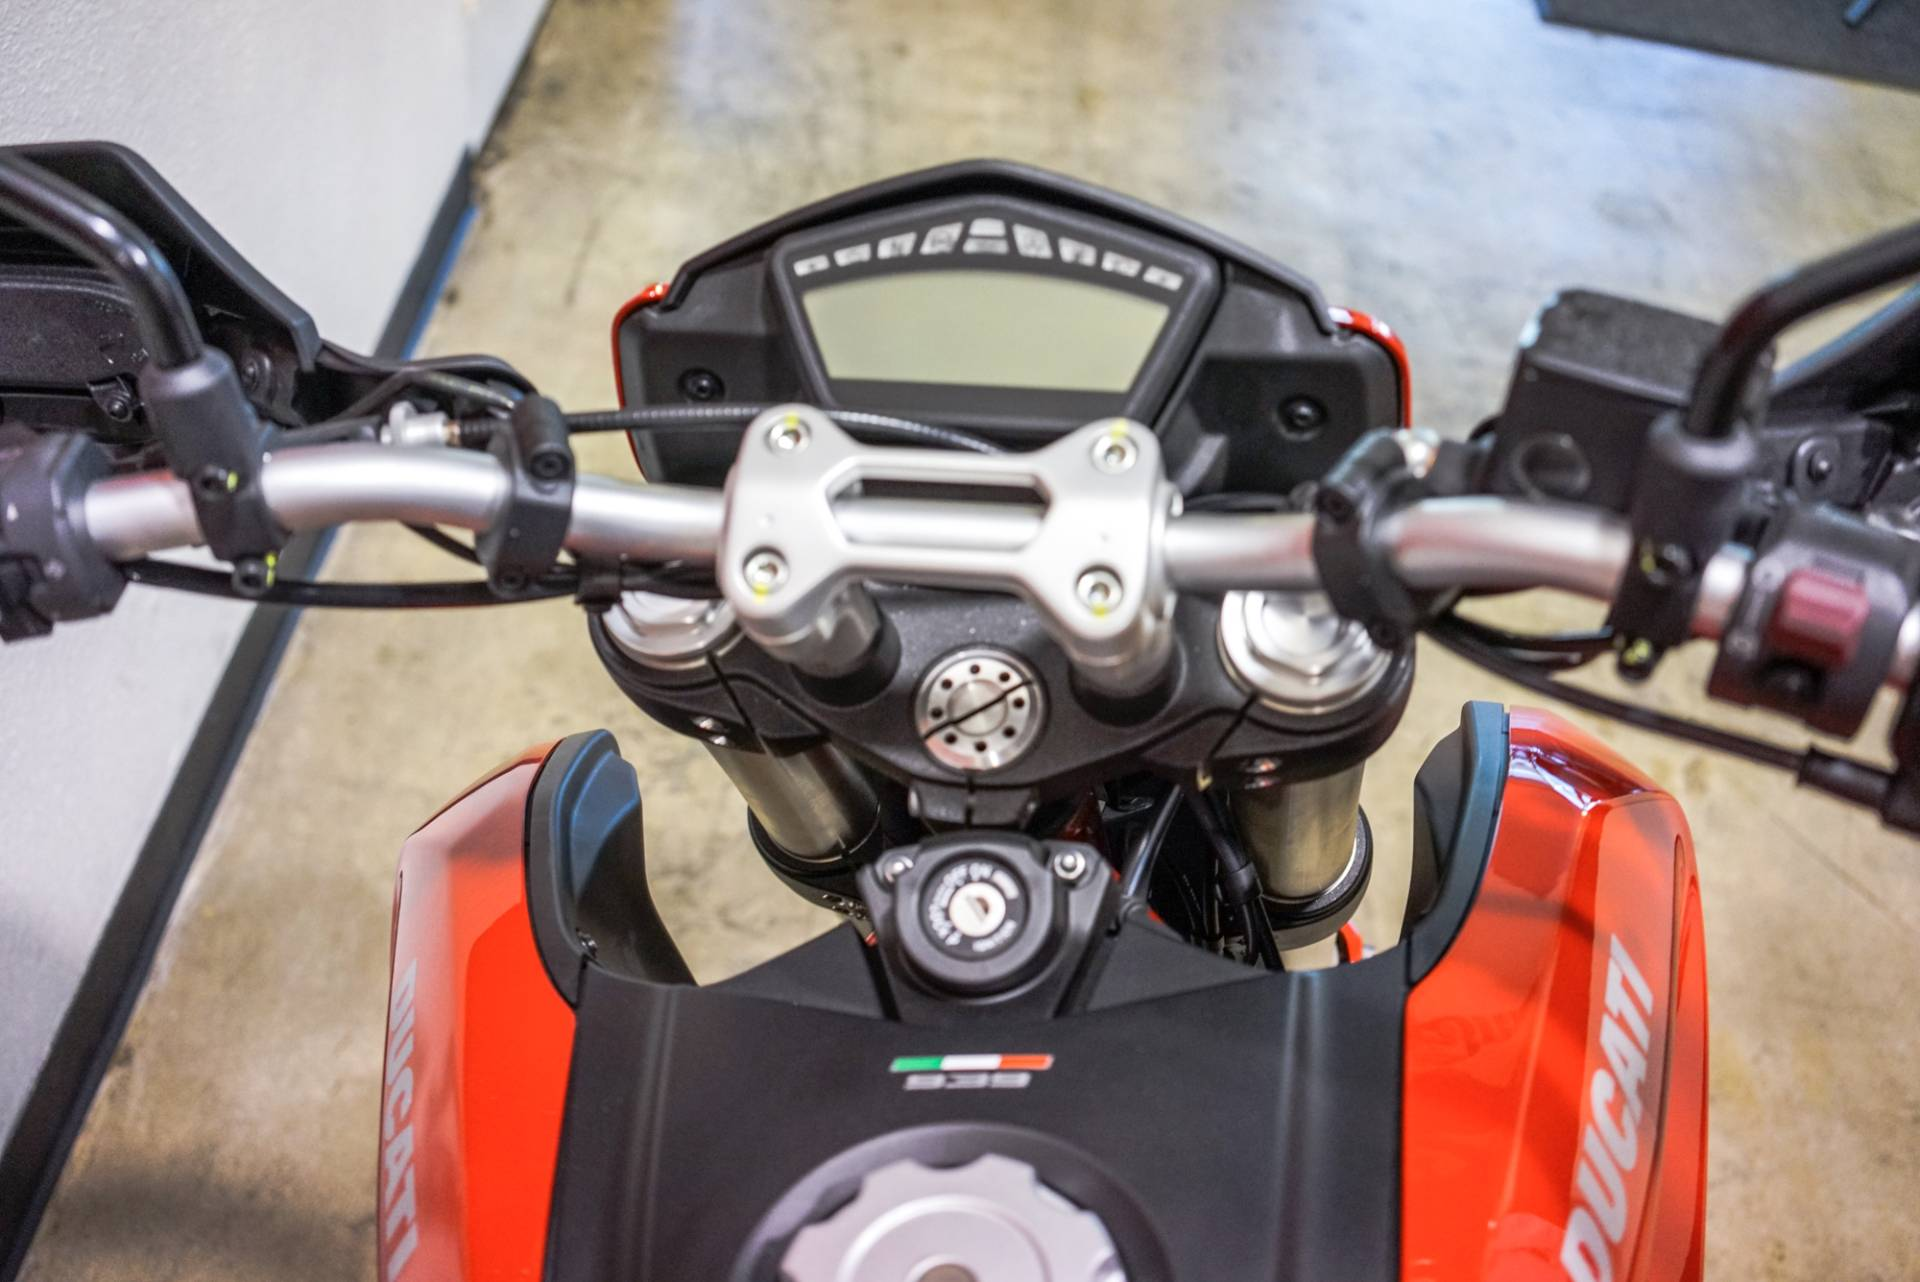 2018 Ducati Hypermotard 939 in Brea, California - Photo 5